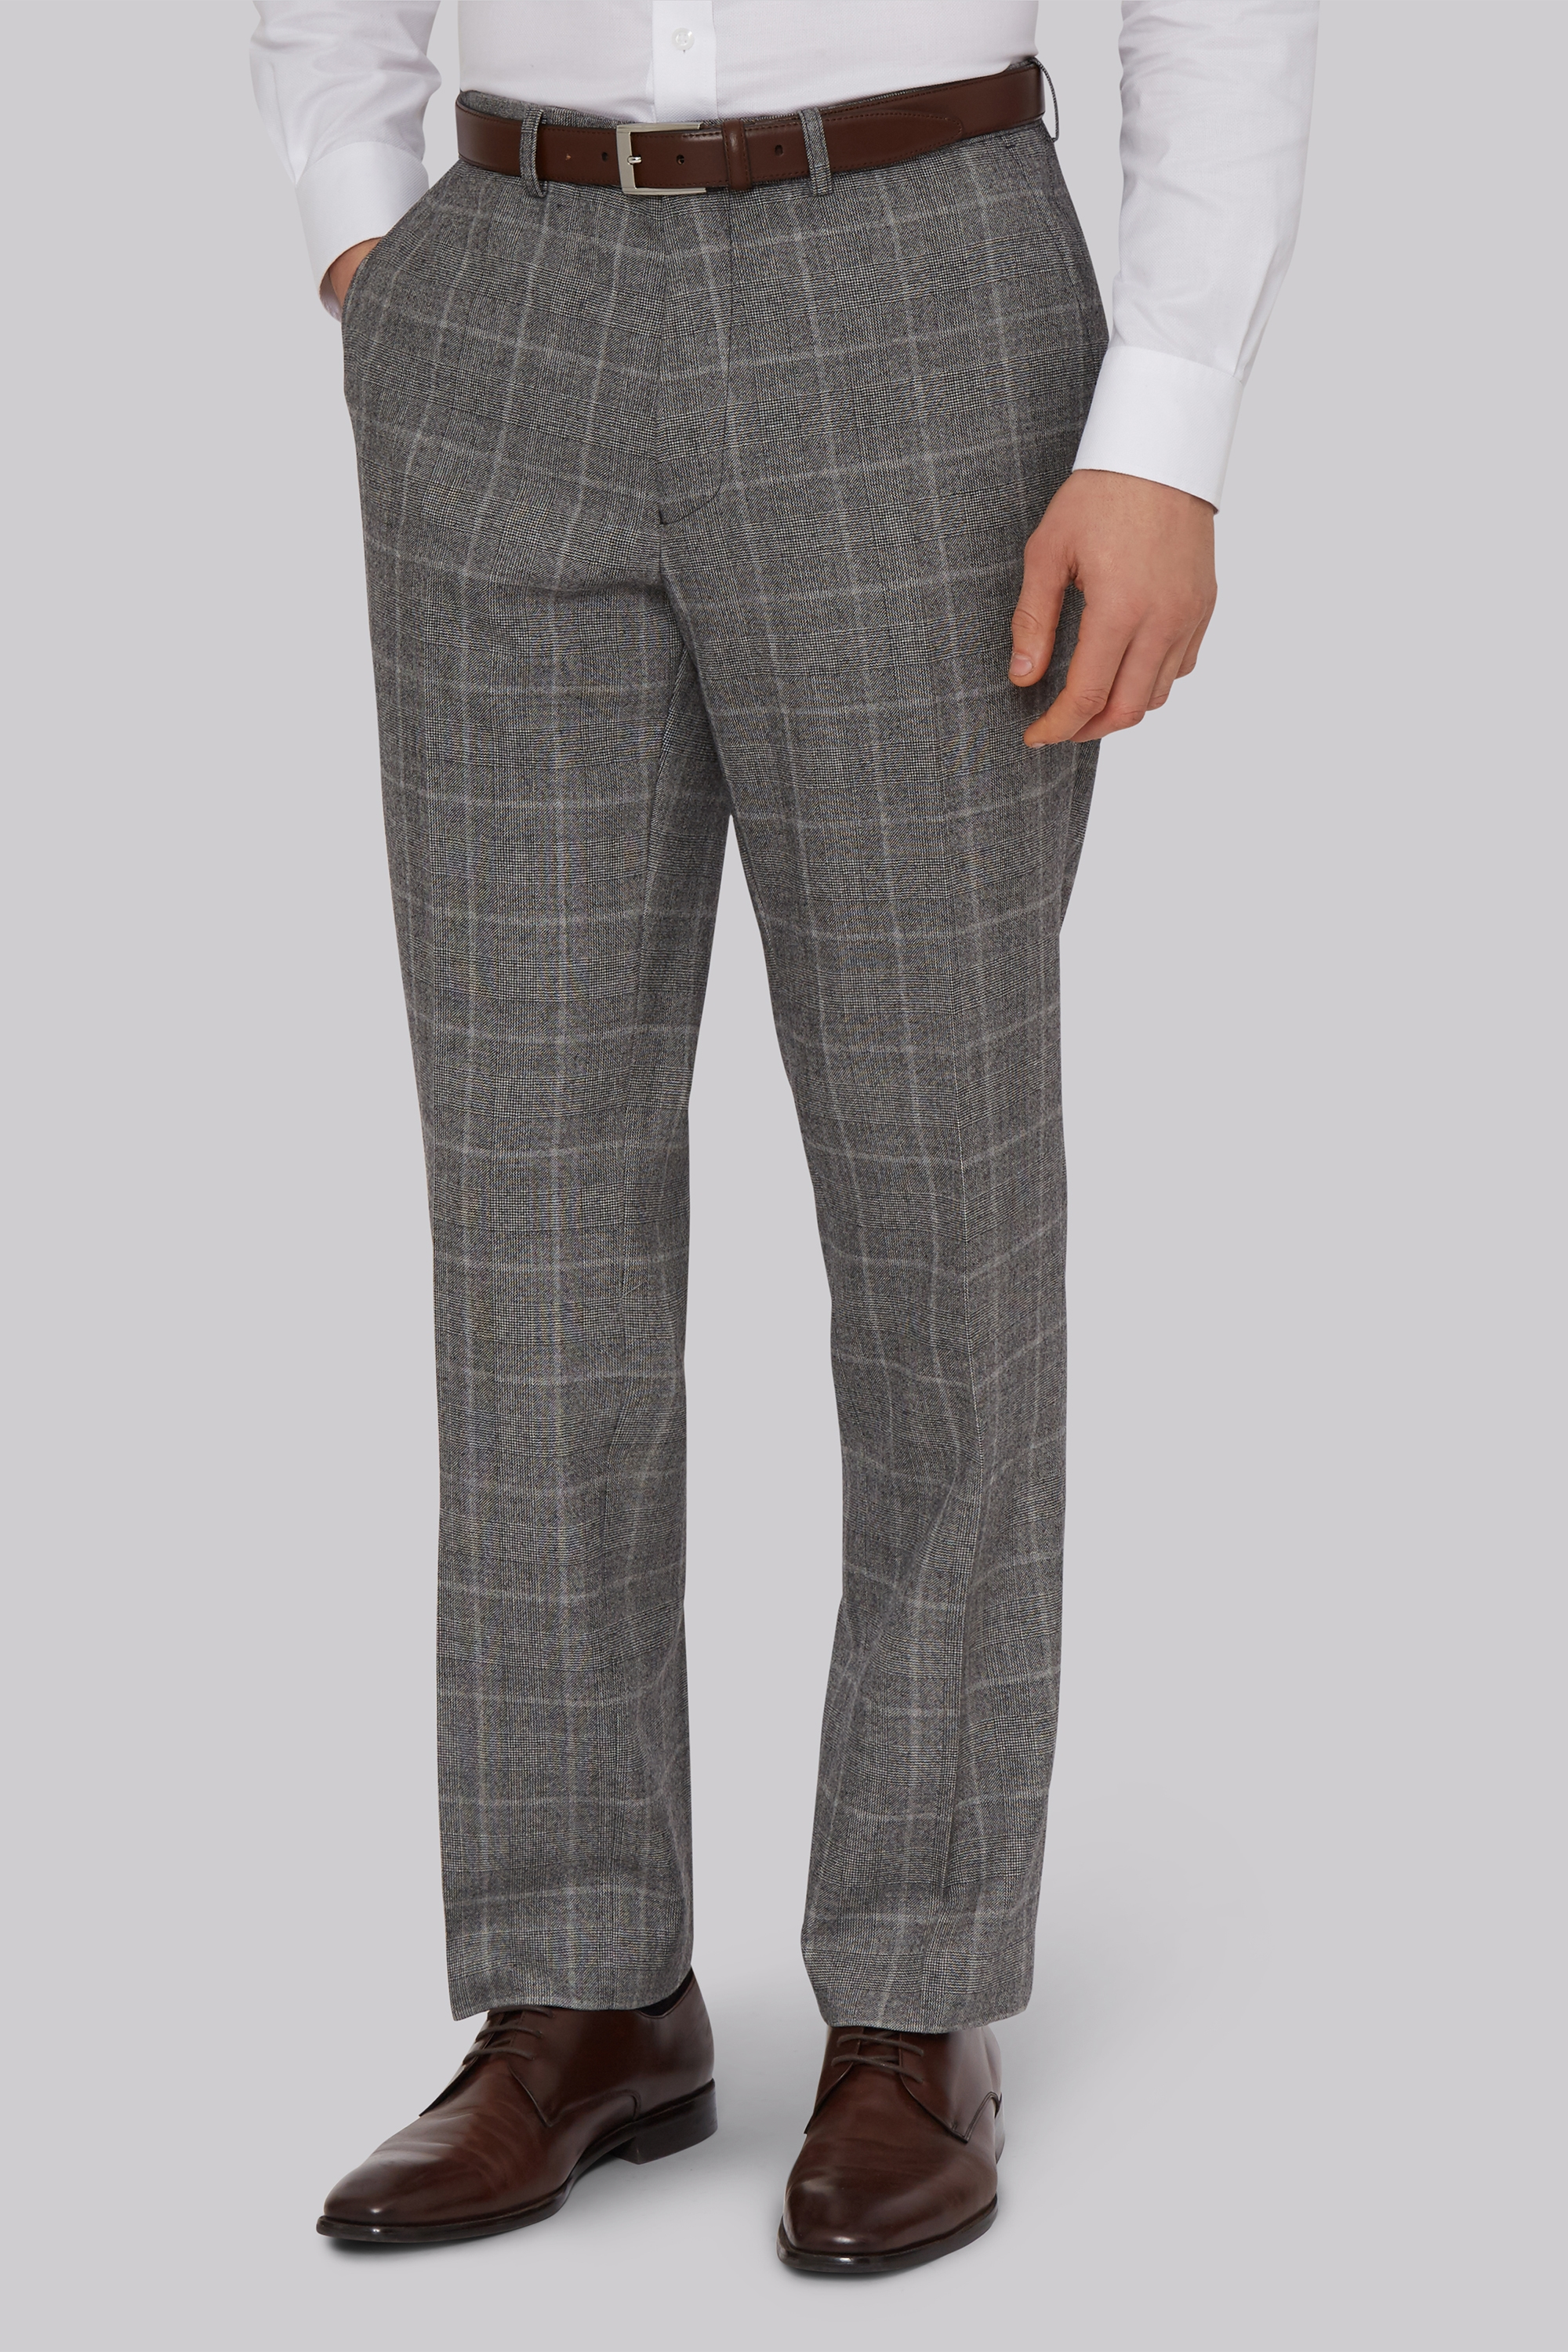 Moss Bros Savoy Taylors Guild Regular Fit Black and White Check Trousers